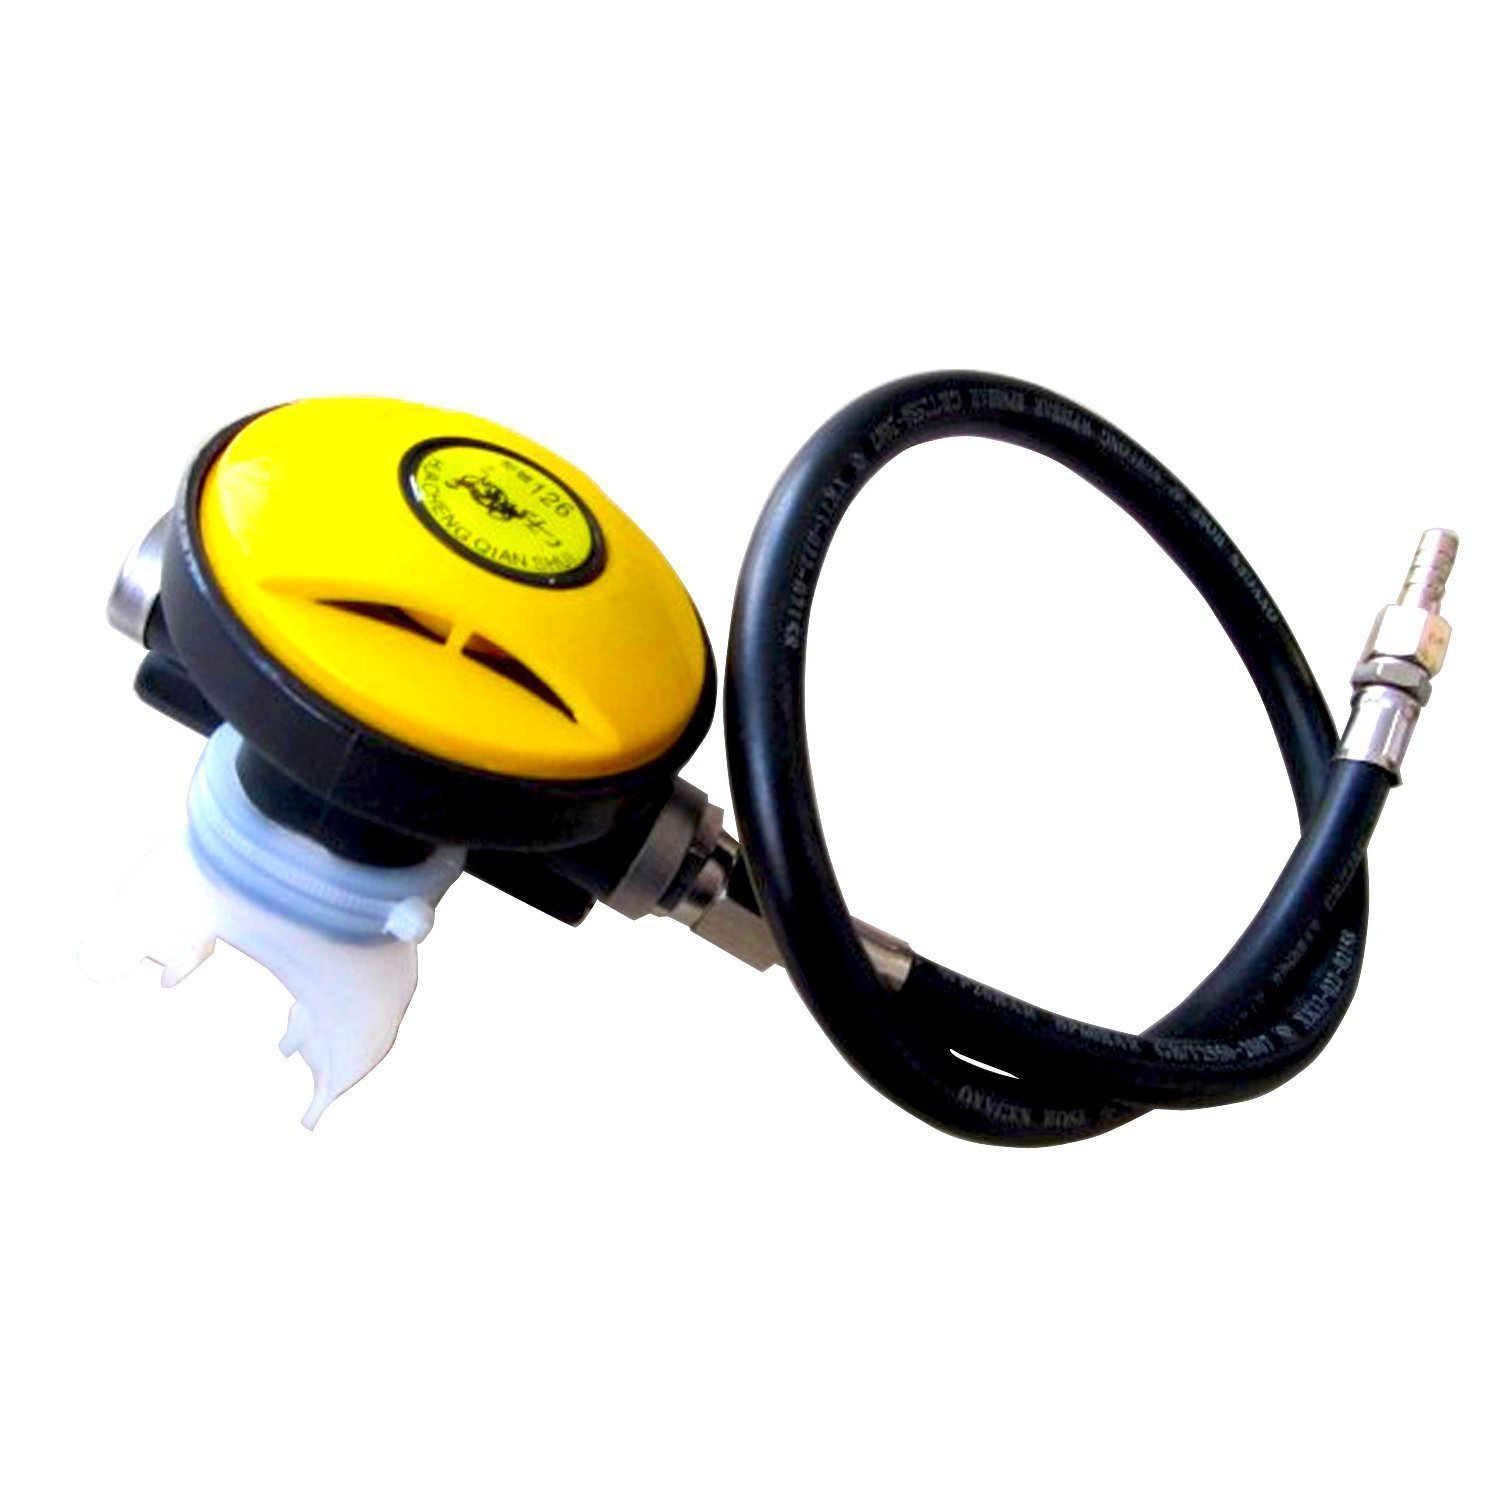 REAMTOP 145 PSI Explorer Scuba Diving Dive 2nd Stage Regulator Octopus Hookah (Yellow) by REAMTOP